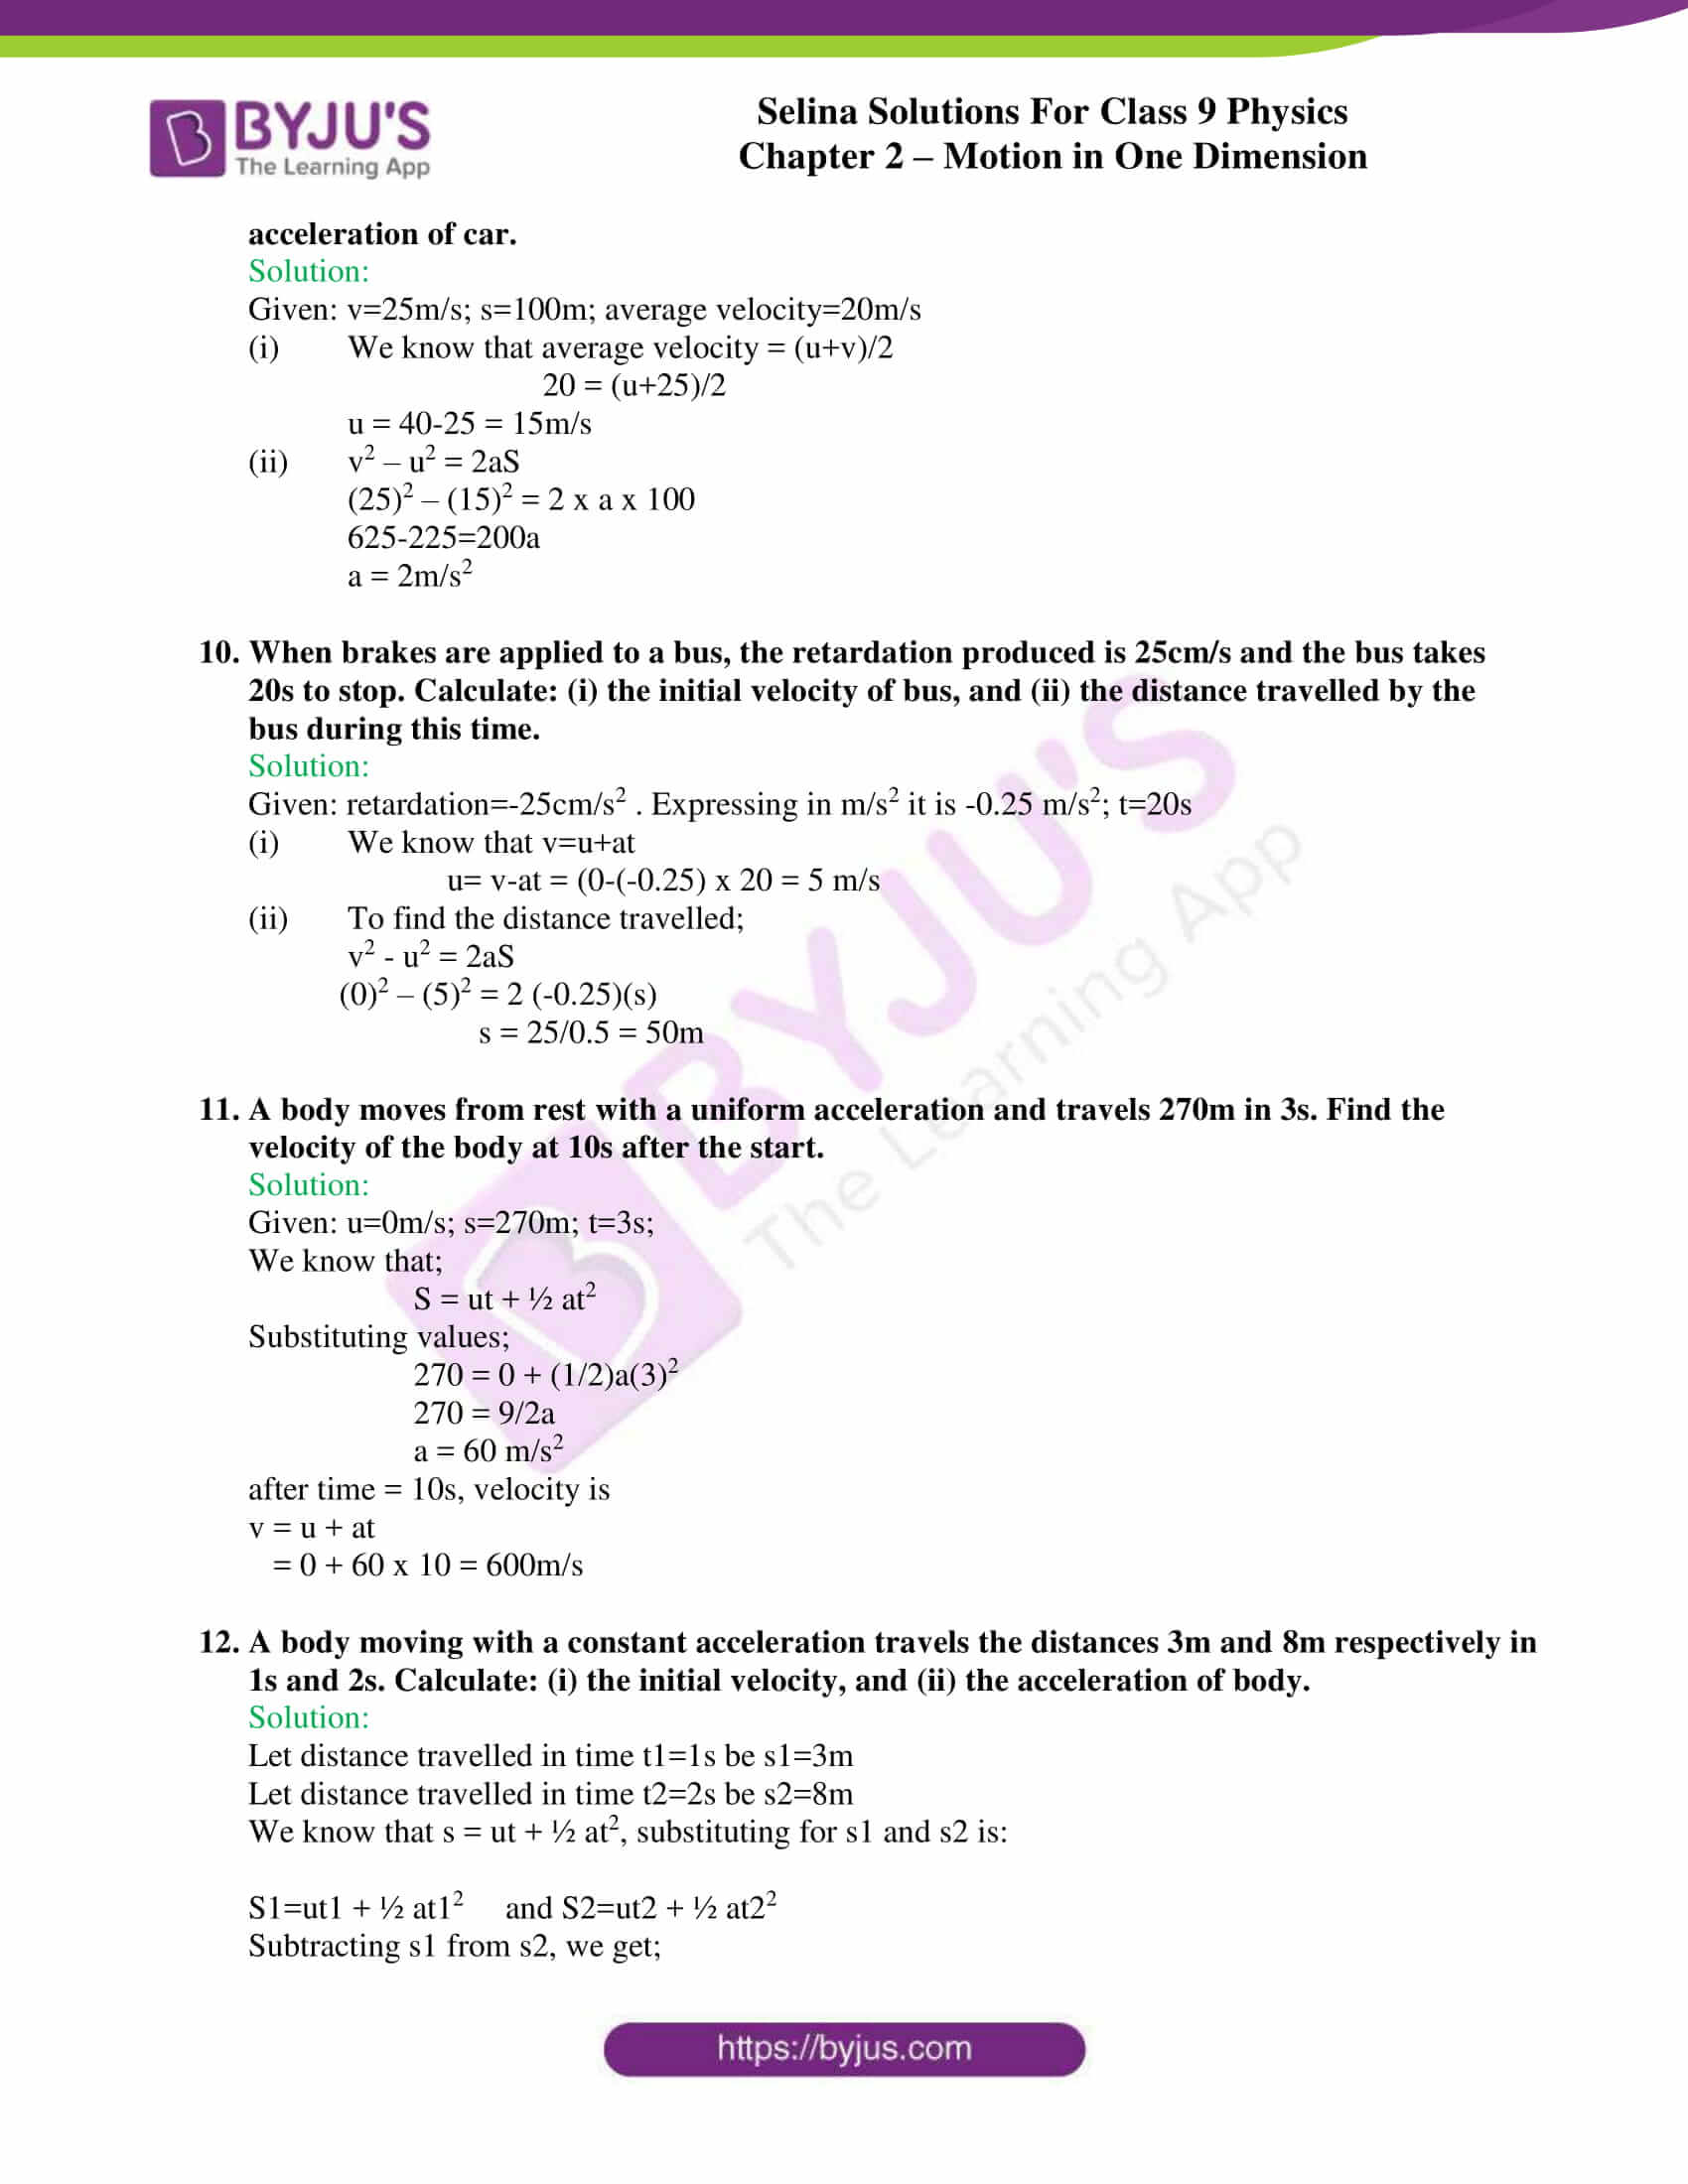 selina solutions class 9 physics chapter 2 Motion in One Dimension part 36